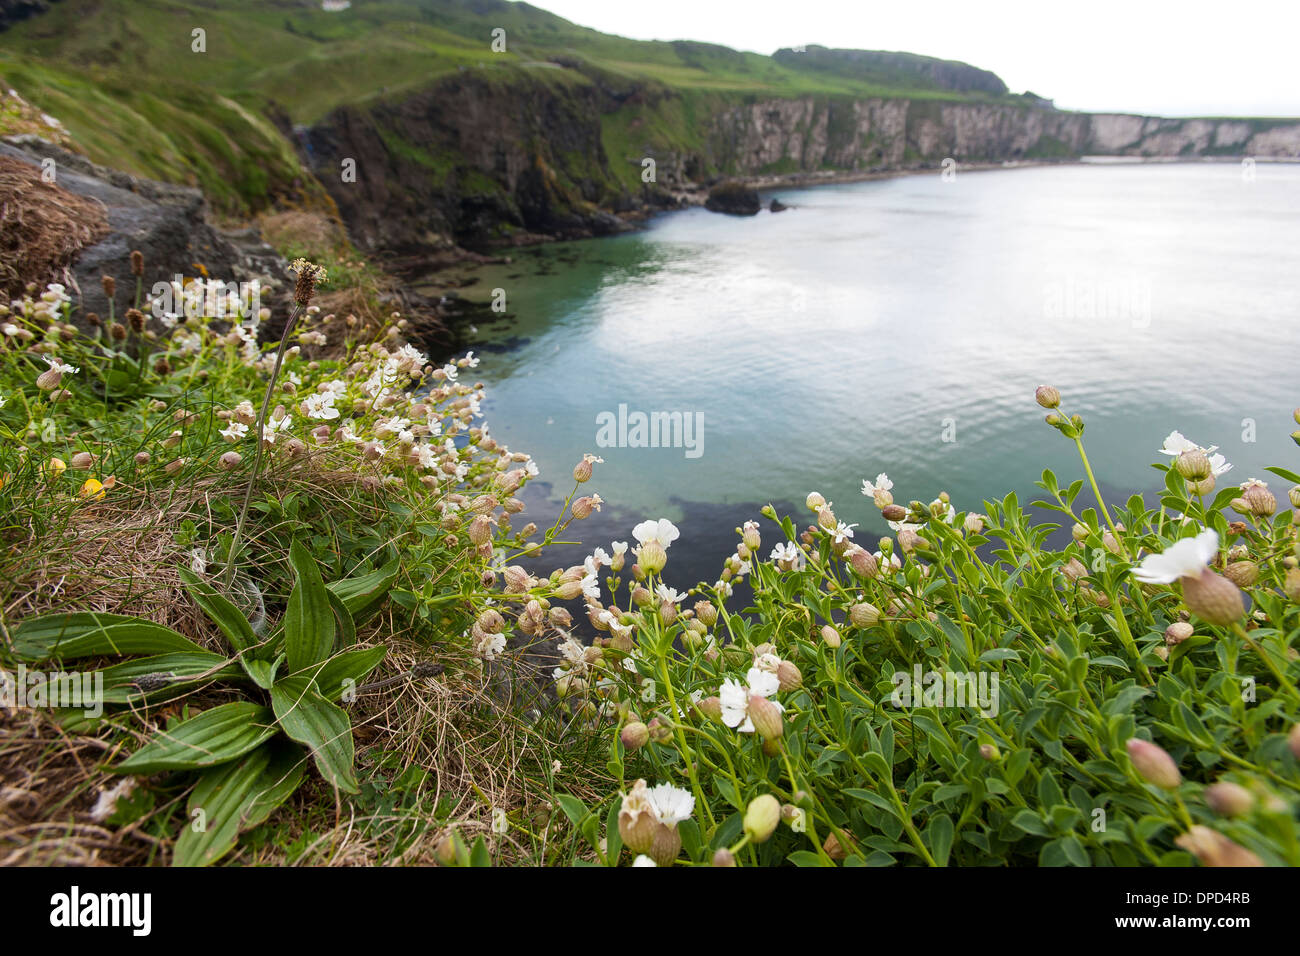 Looking at the view along the Antrim coast seen from Carrickarede Island a National Trust property in Northern Ireland. - Stock Image